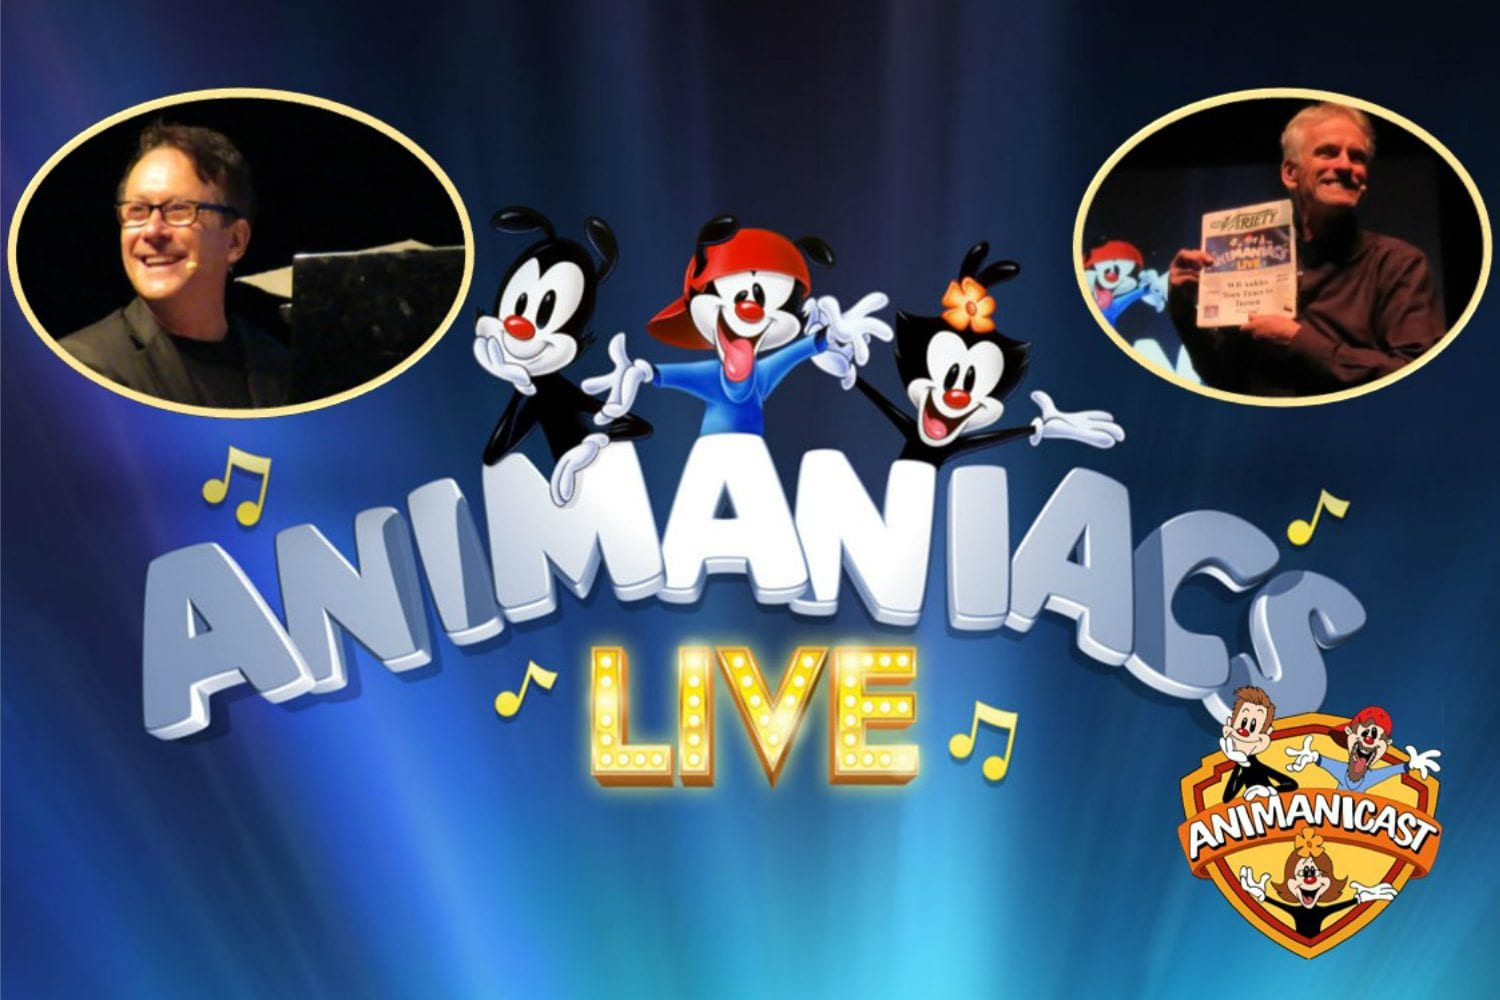 Animanicast #64a- Animaniacs Live in Tucson with Rob Paulsen and Randy Rogel